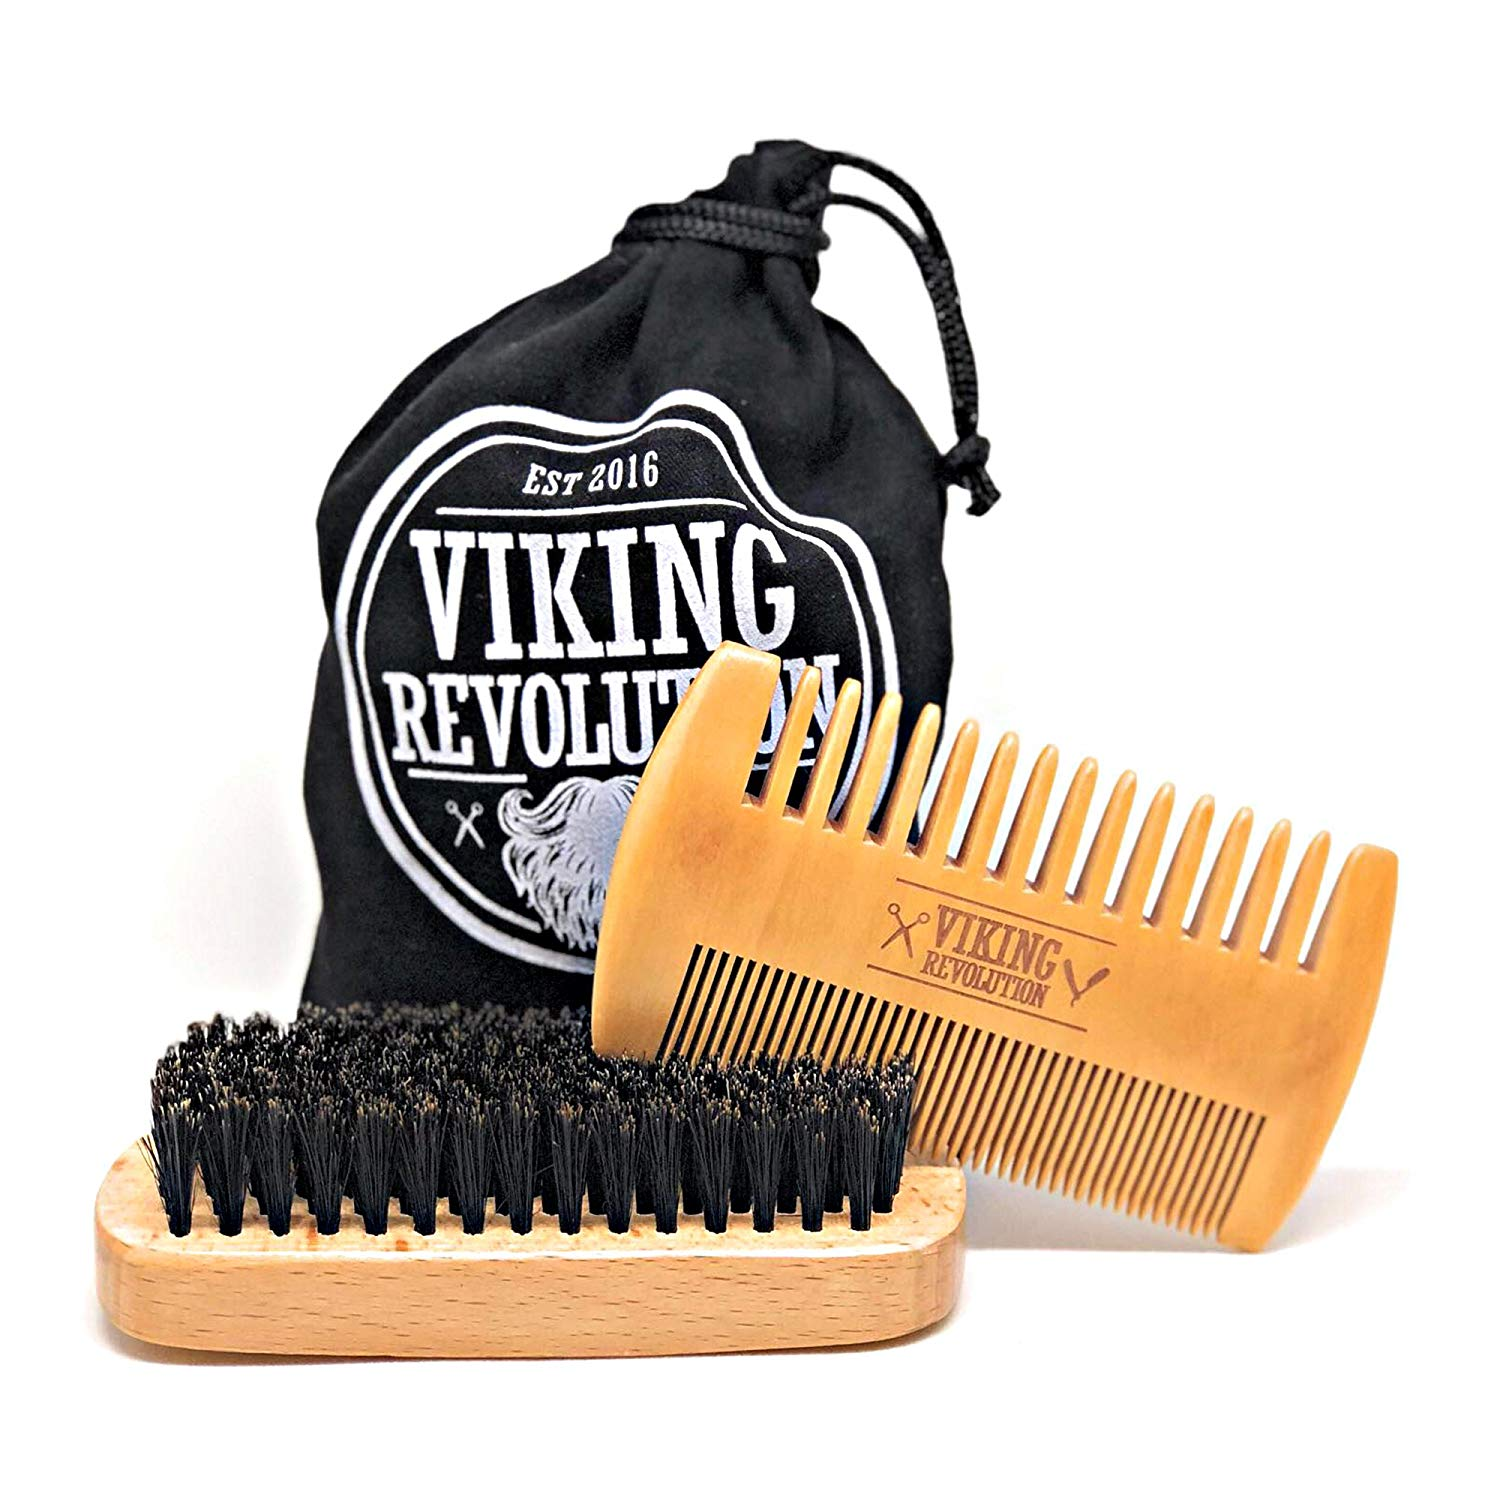 Beard Comb & Beard Brush Set for Men - Natural Boar Bristle Brush and Dual Action Pear Wood Comb w/Velvet Travel Pouch - Great for Grooming Beards and Mustache - SGTSHARP.COM